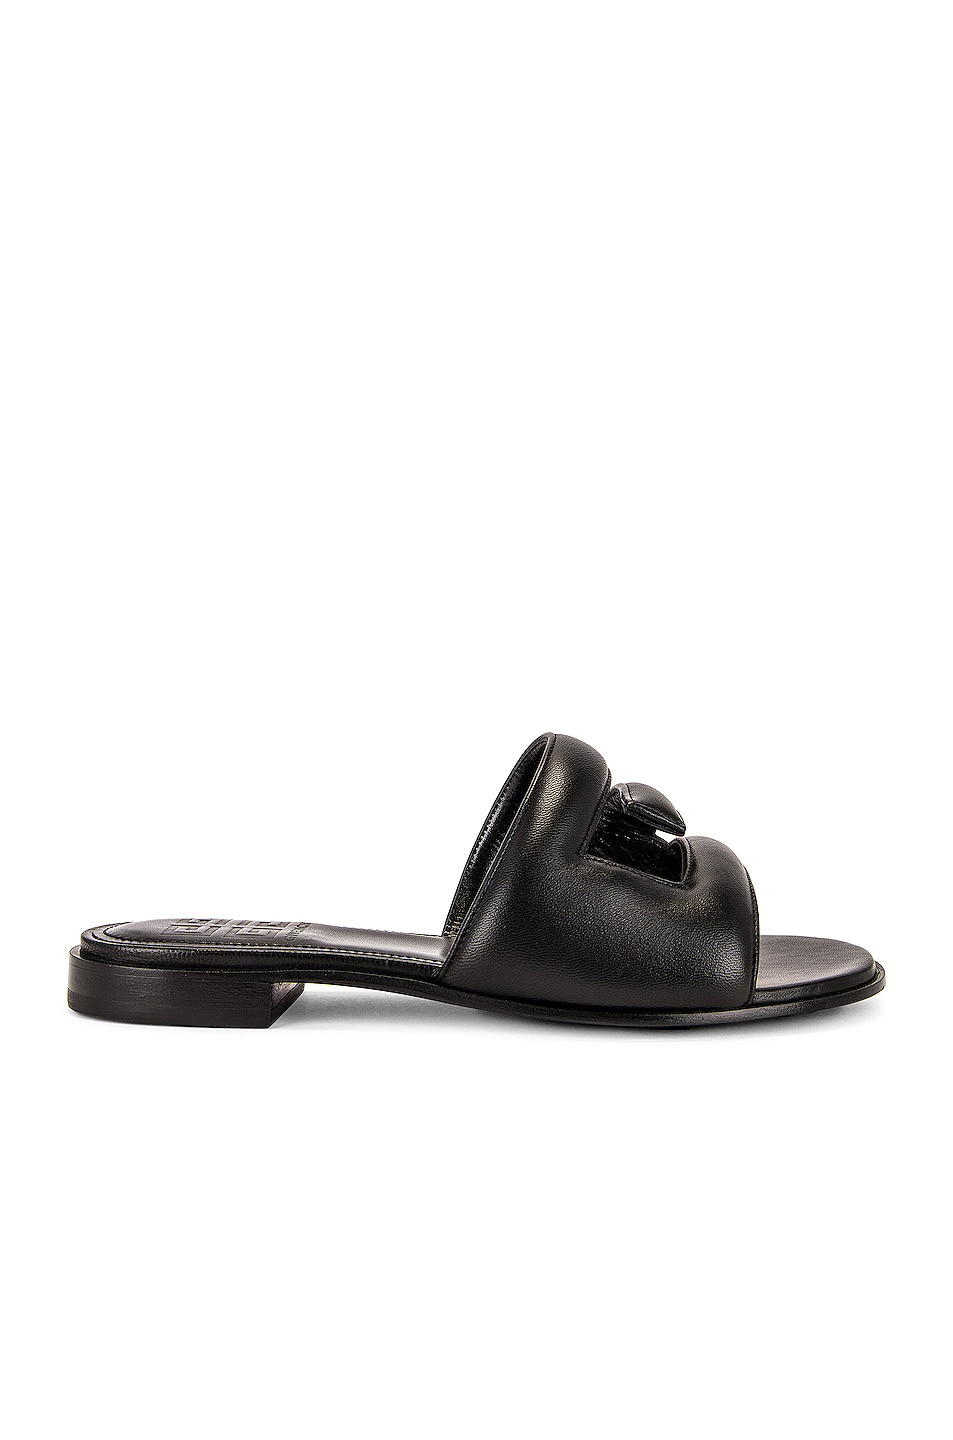 Image 1 of Givenchy G Flat Sandals in Black